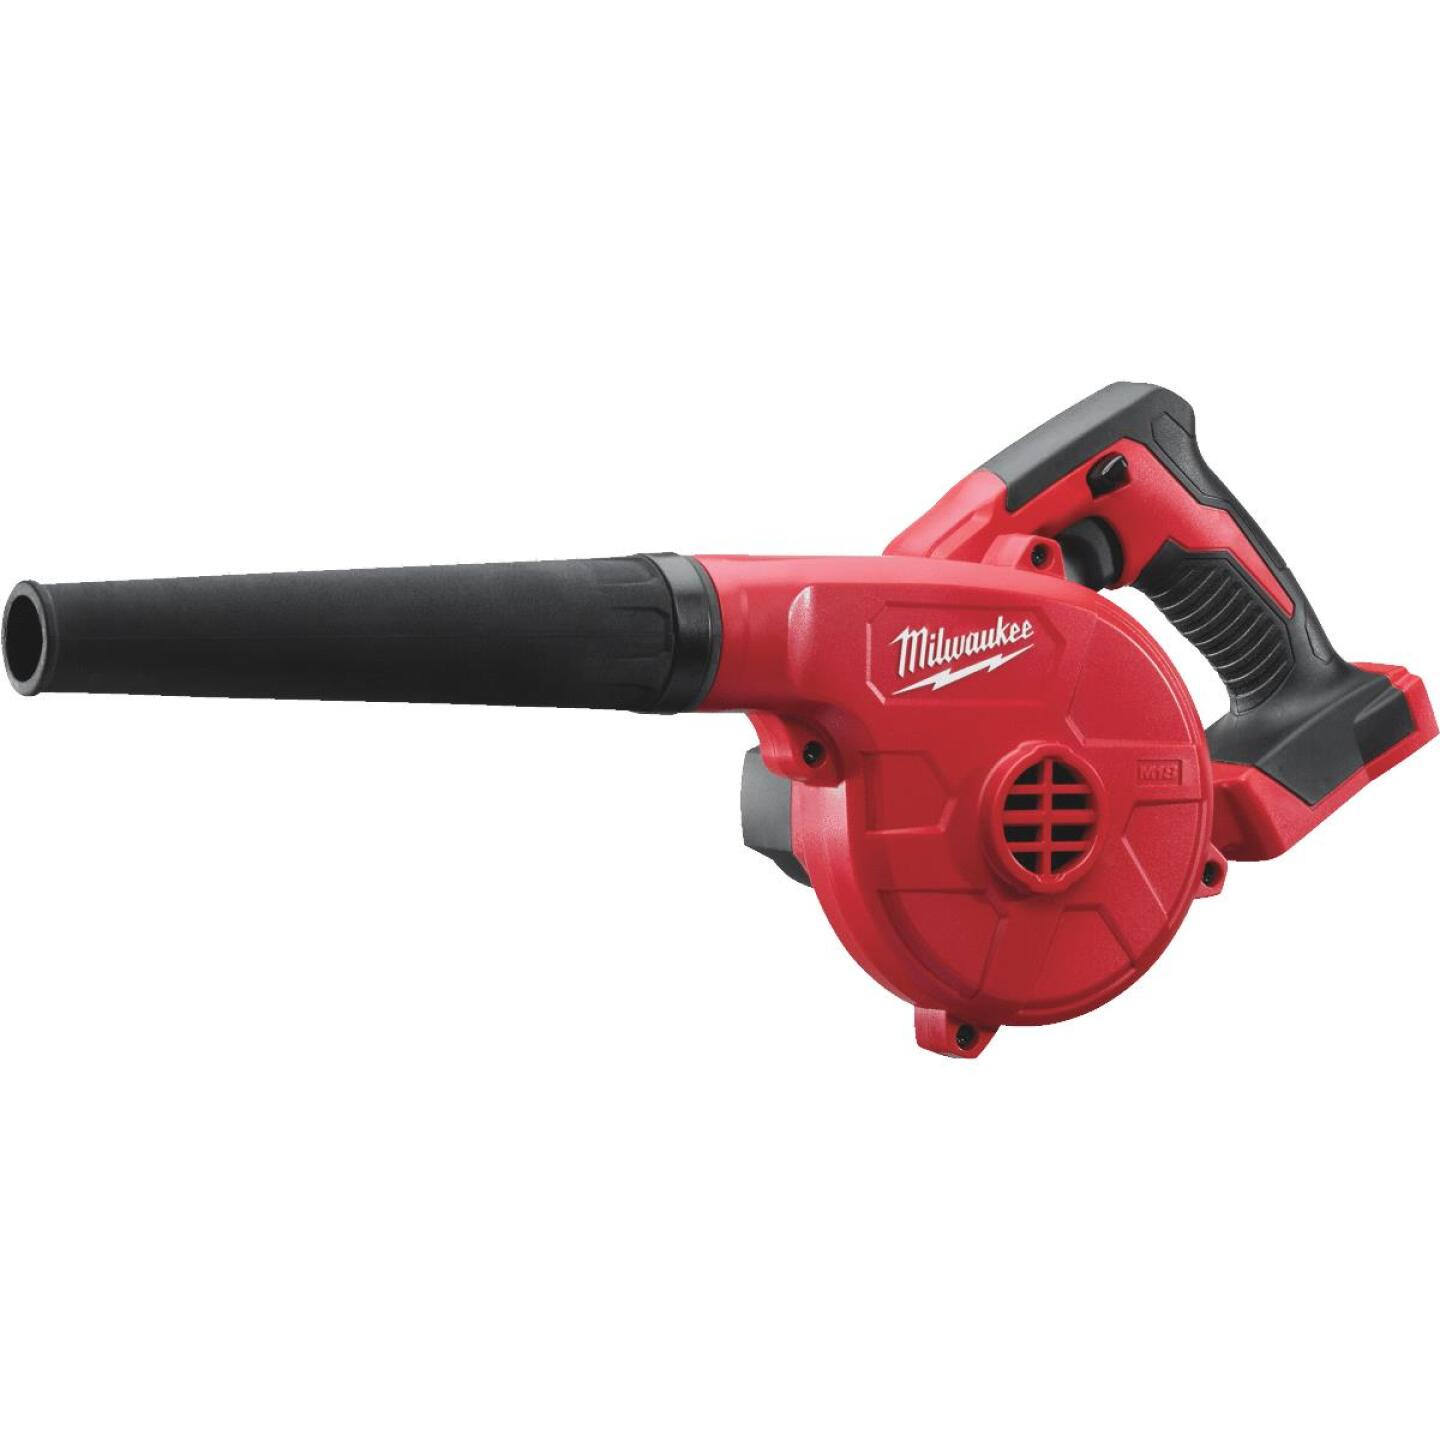 Milwaukee M18 160 MPH 18-Volt Compact Lithium-Ion Cordless Blower (Bare Tool) Image 1